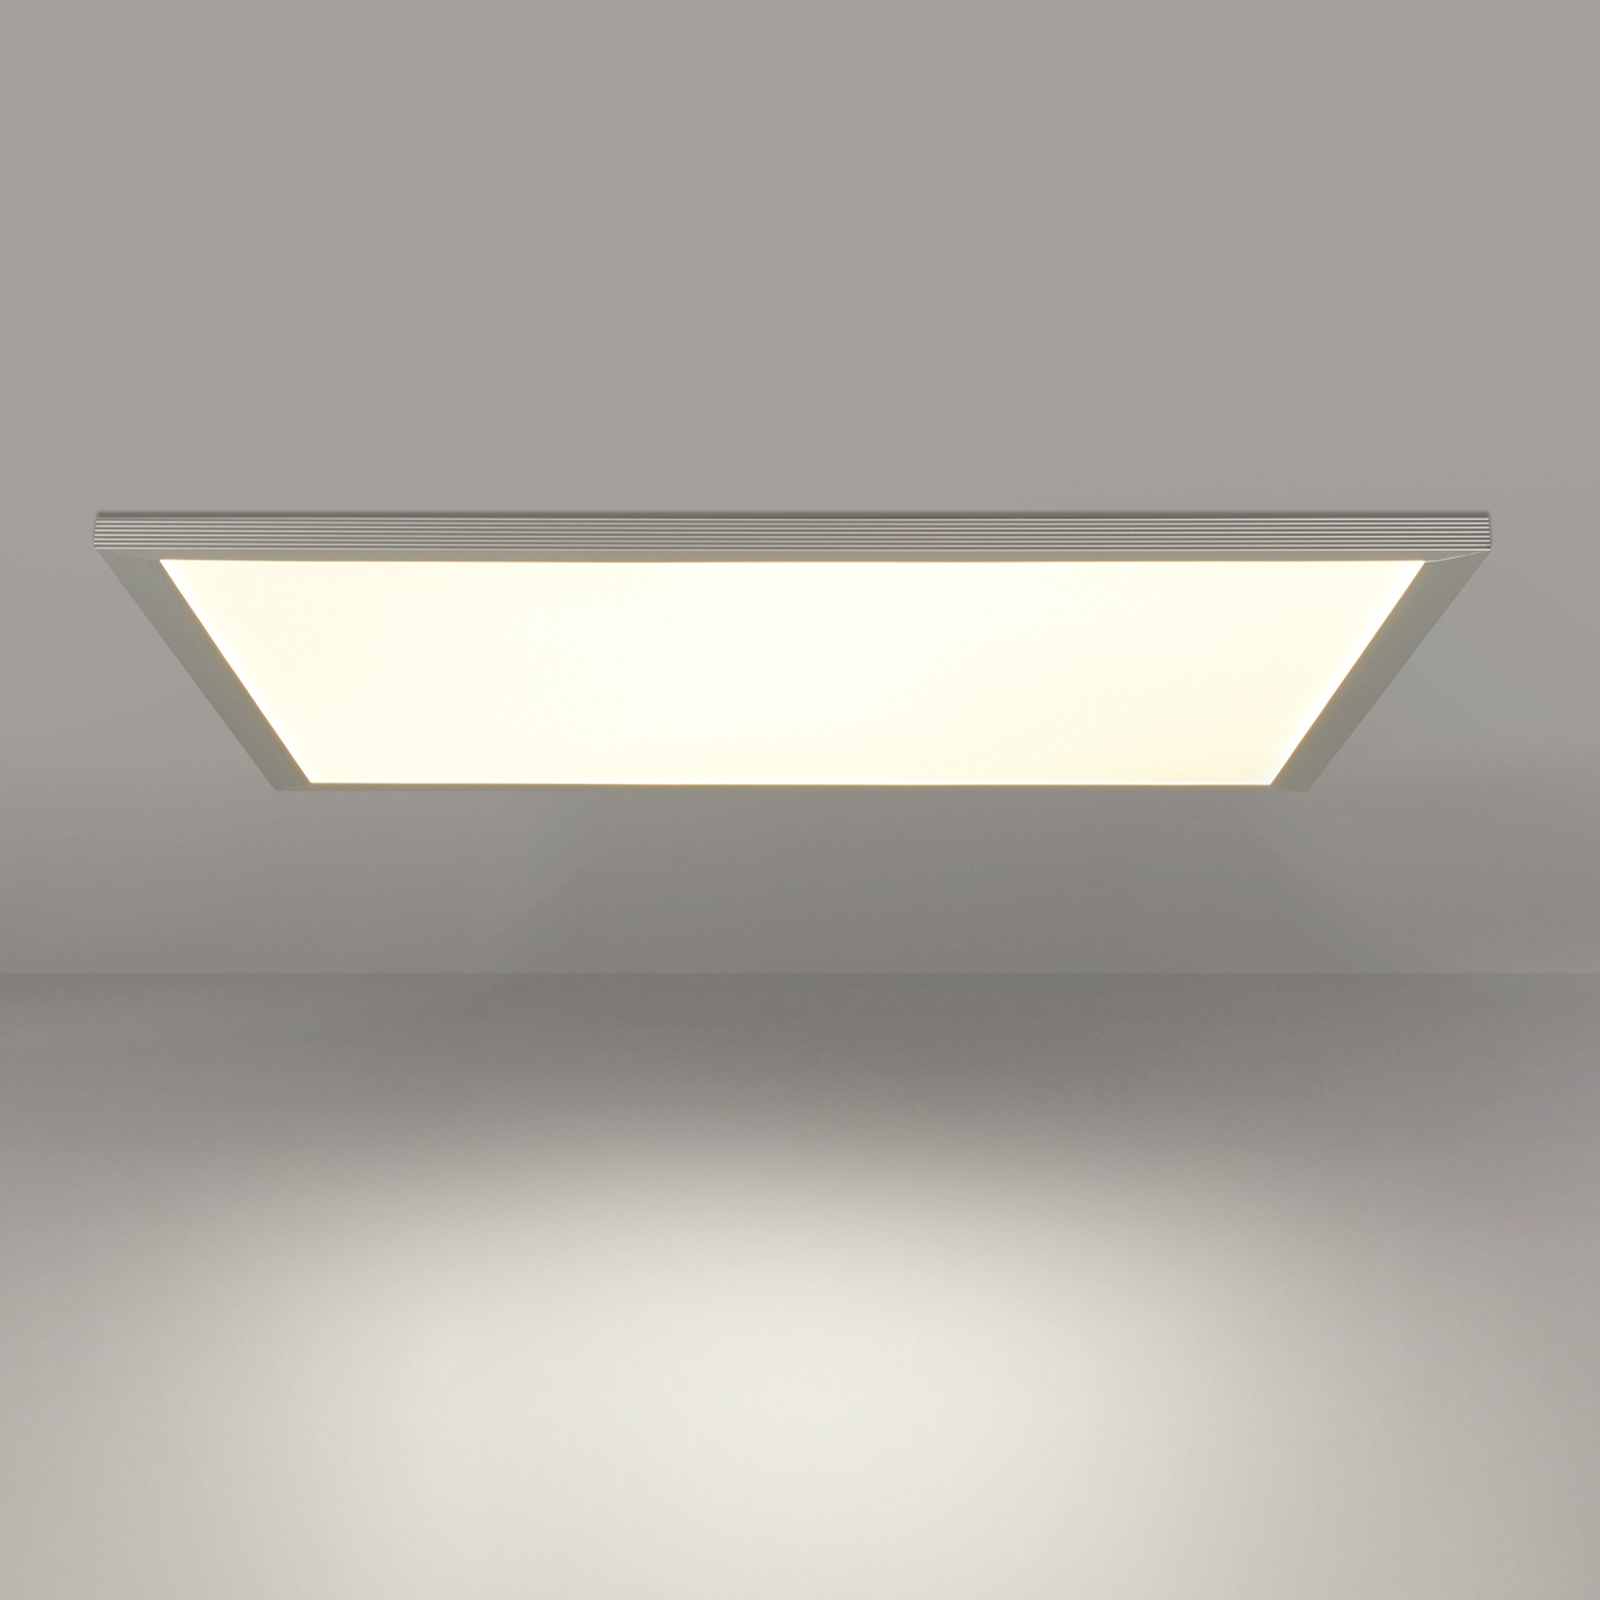 All-in-One-LED-Panel Edge, bianco universale